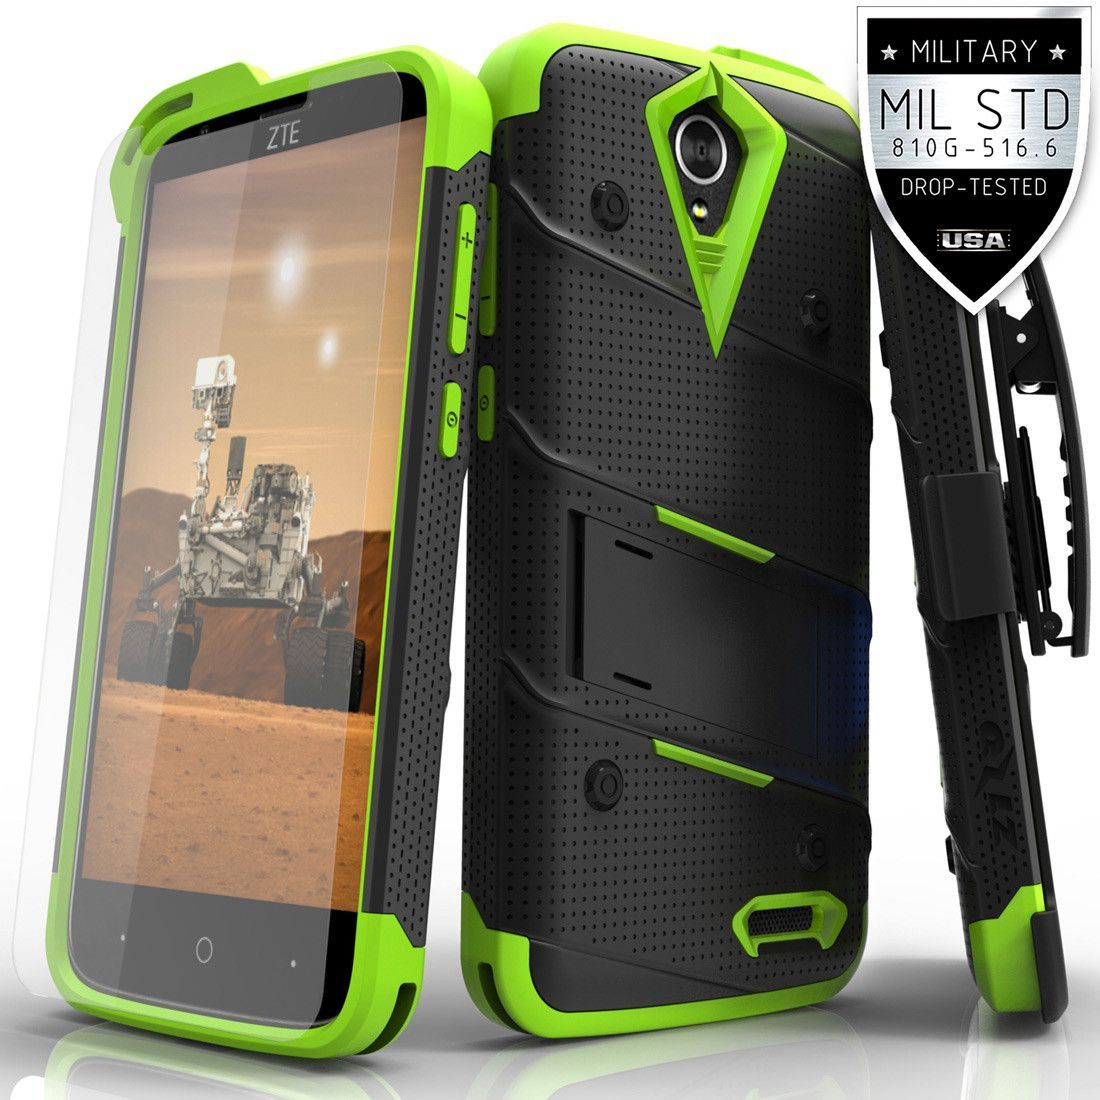 ZTE Grand X 3 Z959 Military Grade Drop-Tested Case with Tempered